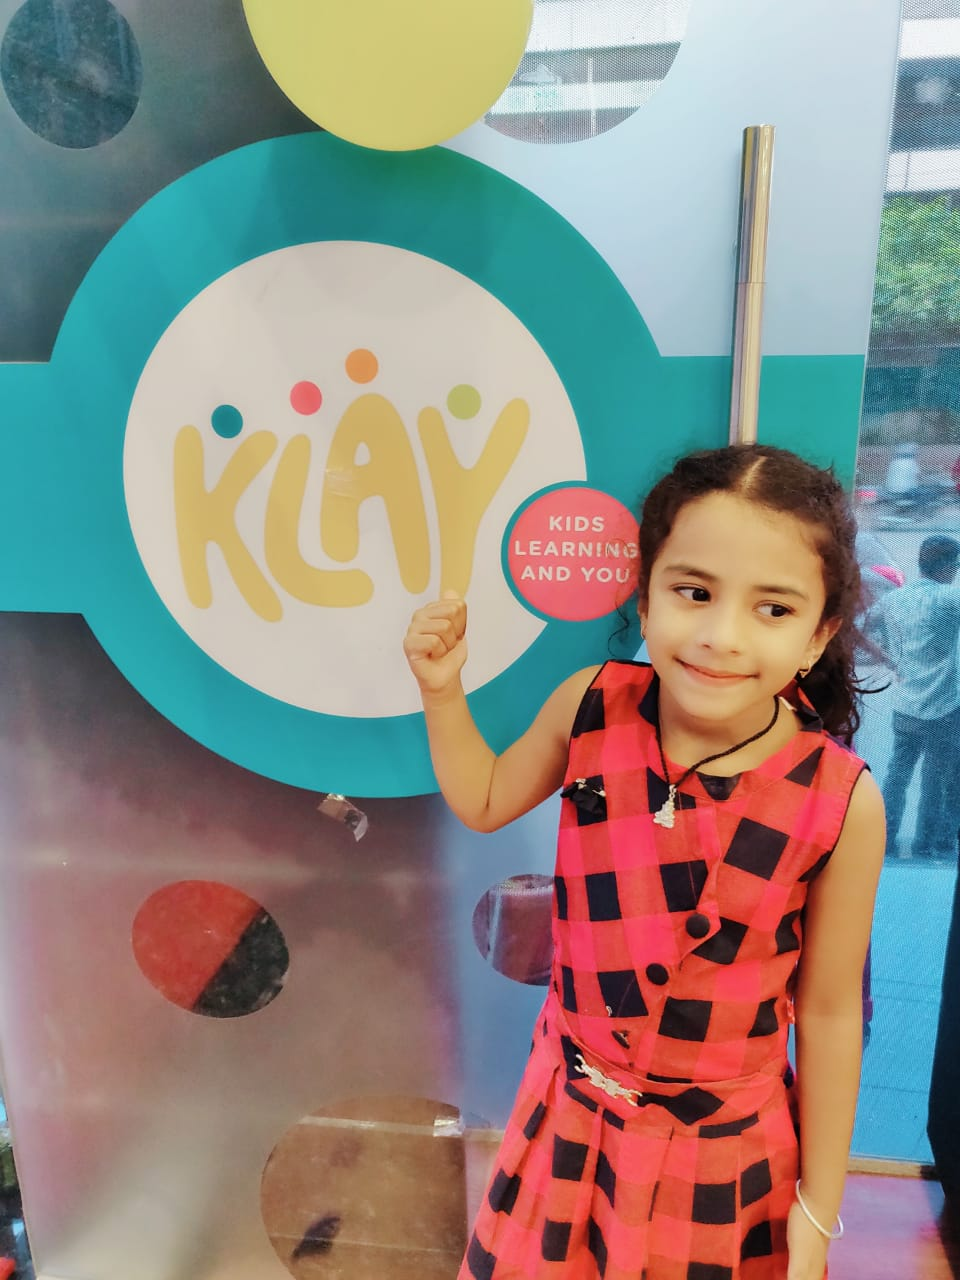 KLAY Prep-Schools and Daycare announces the launch of its second centre at HSR in Bangalore